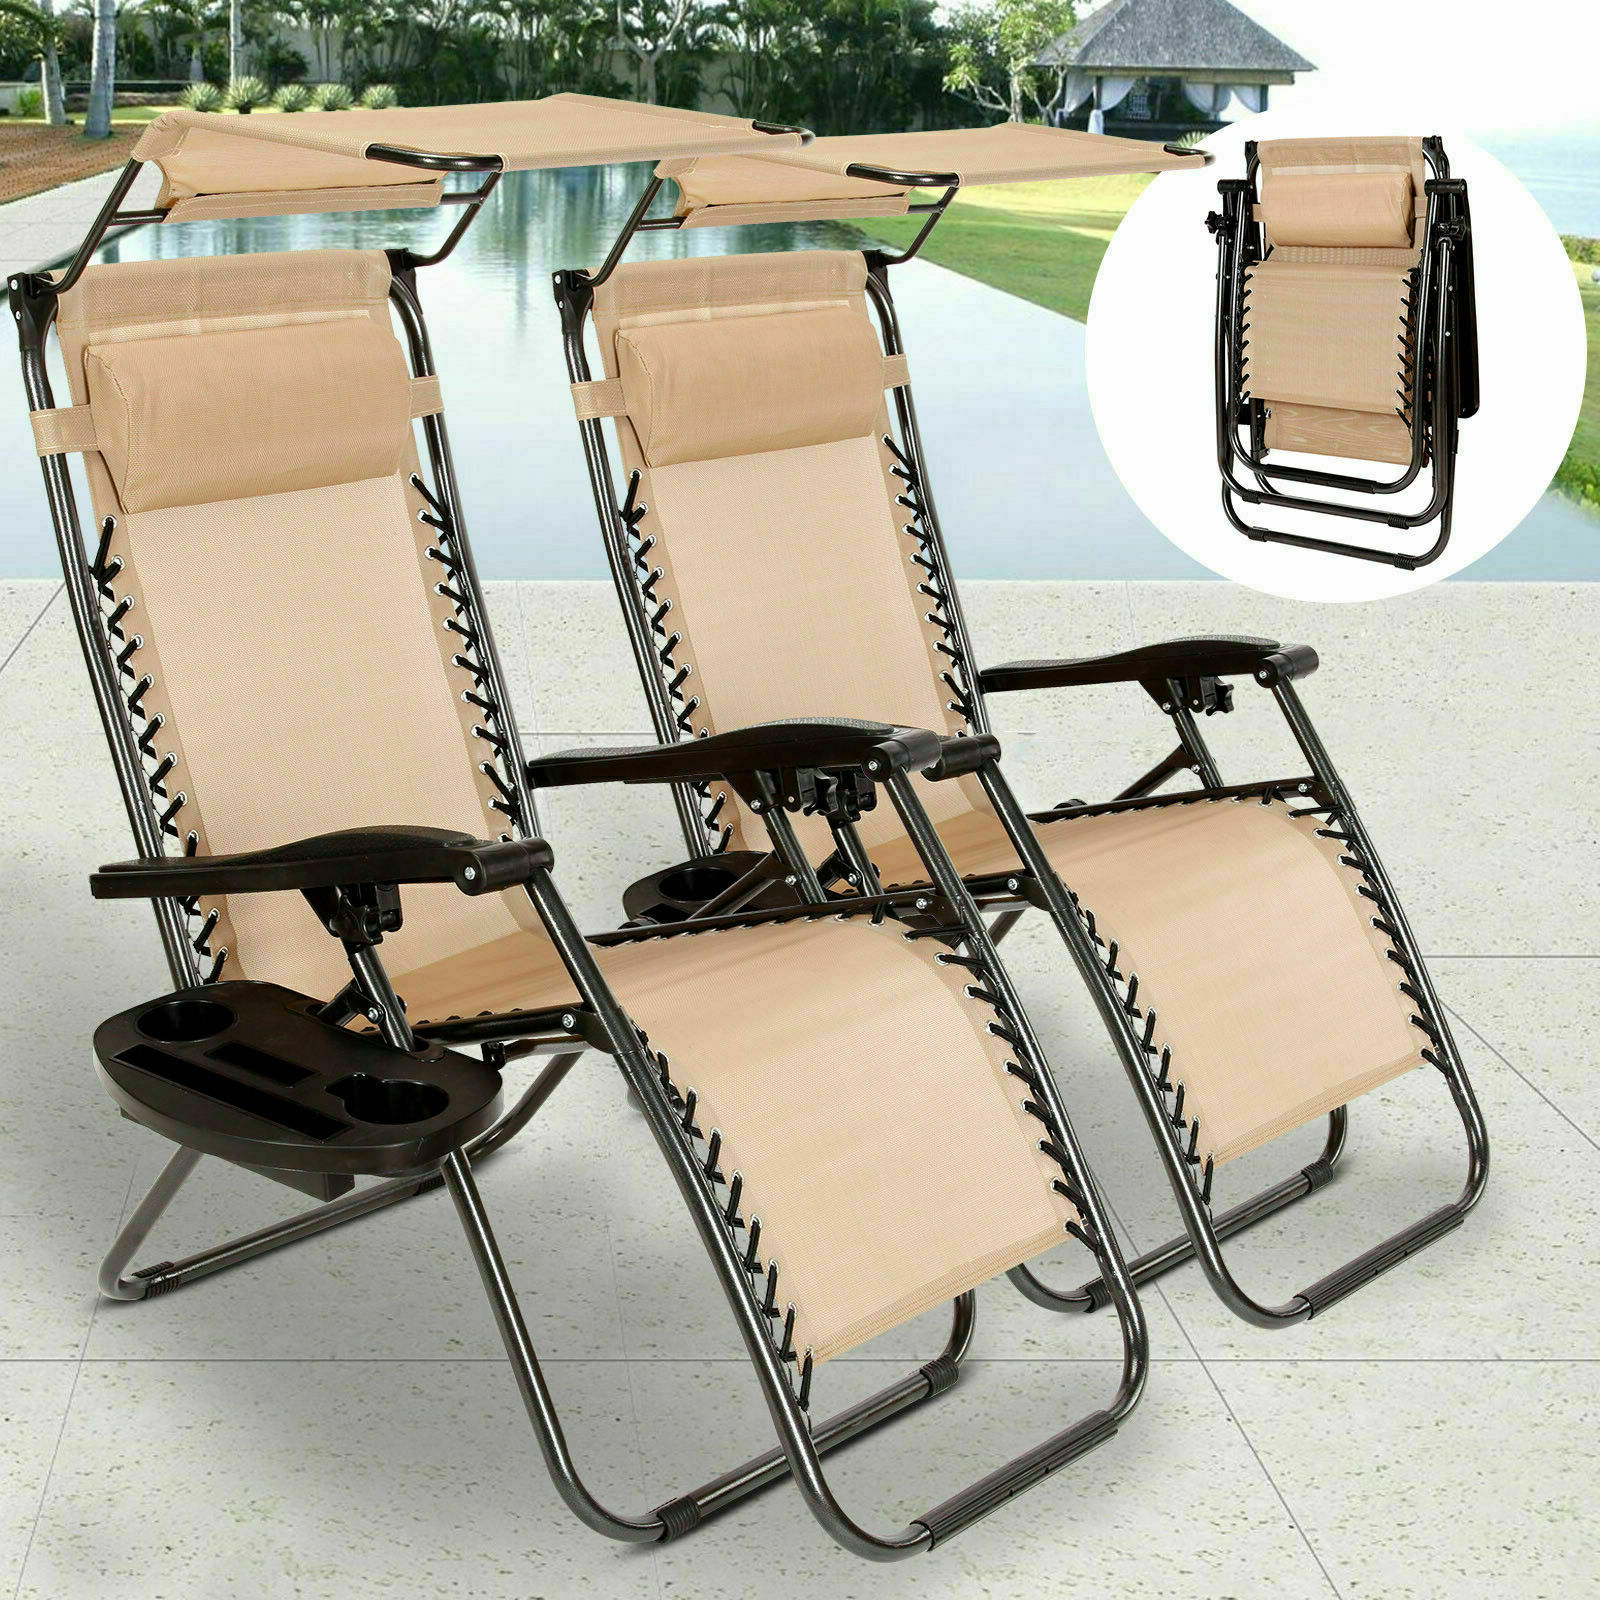 Well Known Double Reclining Lounge Chairs With Canopy Intended For Us Folding Zero Gravity Lounge Chairs Patio Beach Recliner W/ Canopy Cup Holder (View 14 of 25)